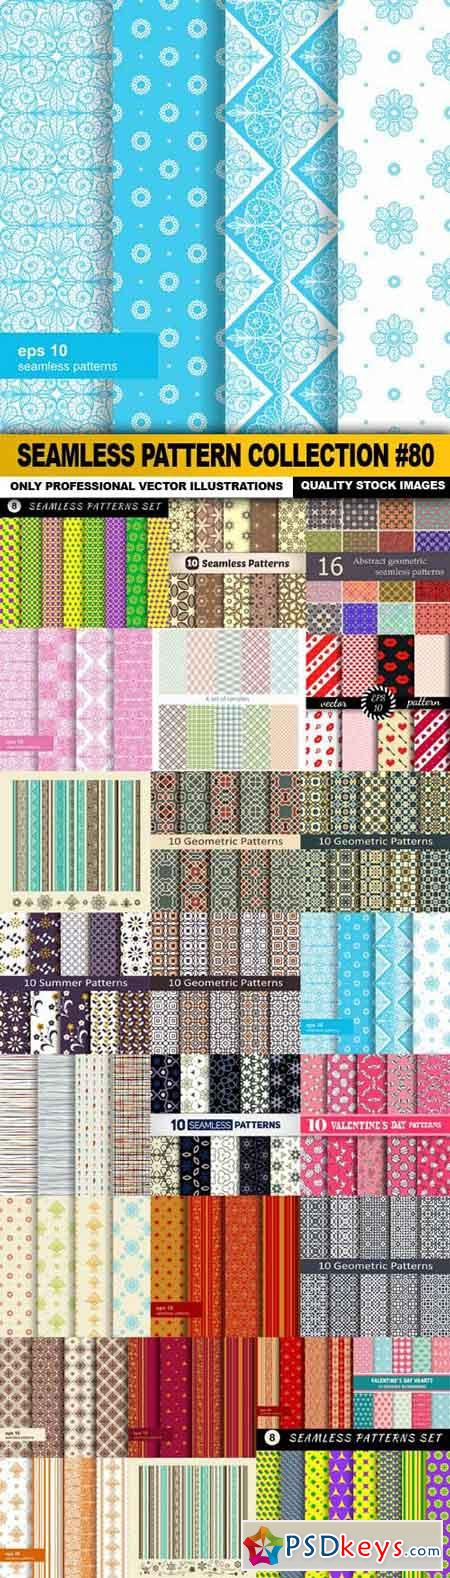 Seamless Pattern Collection #80 - 25 Vector